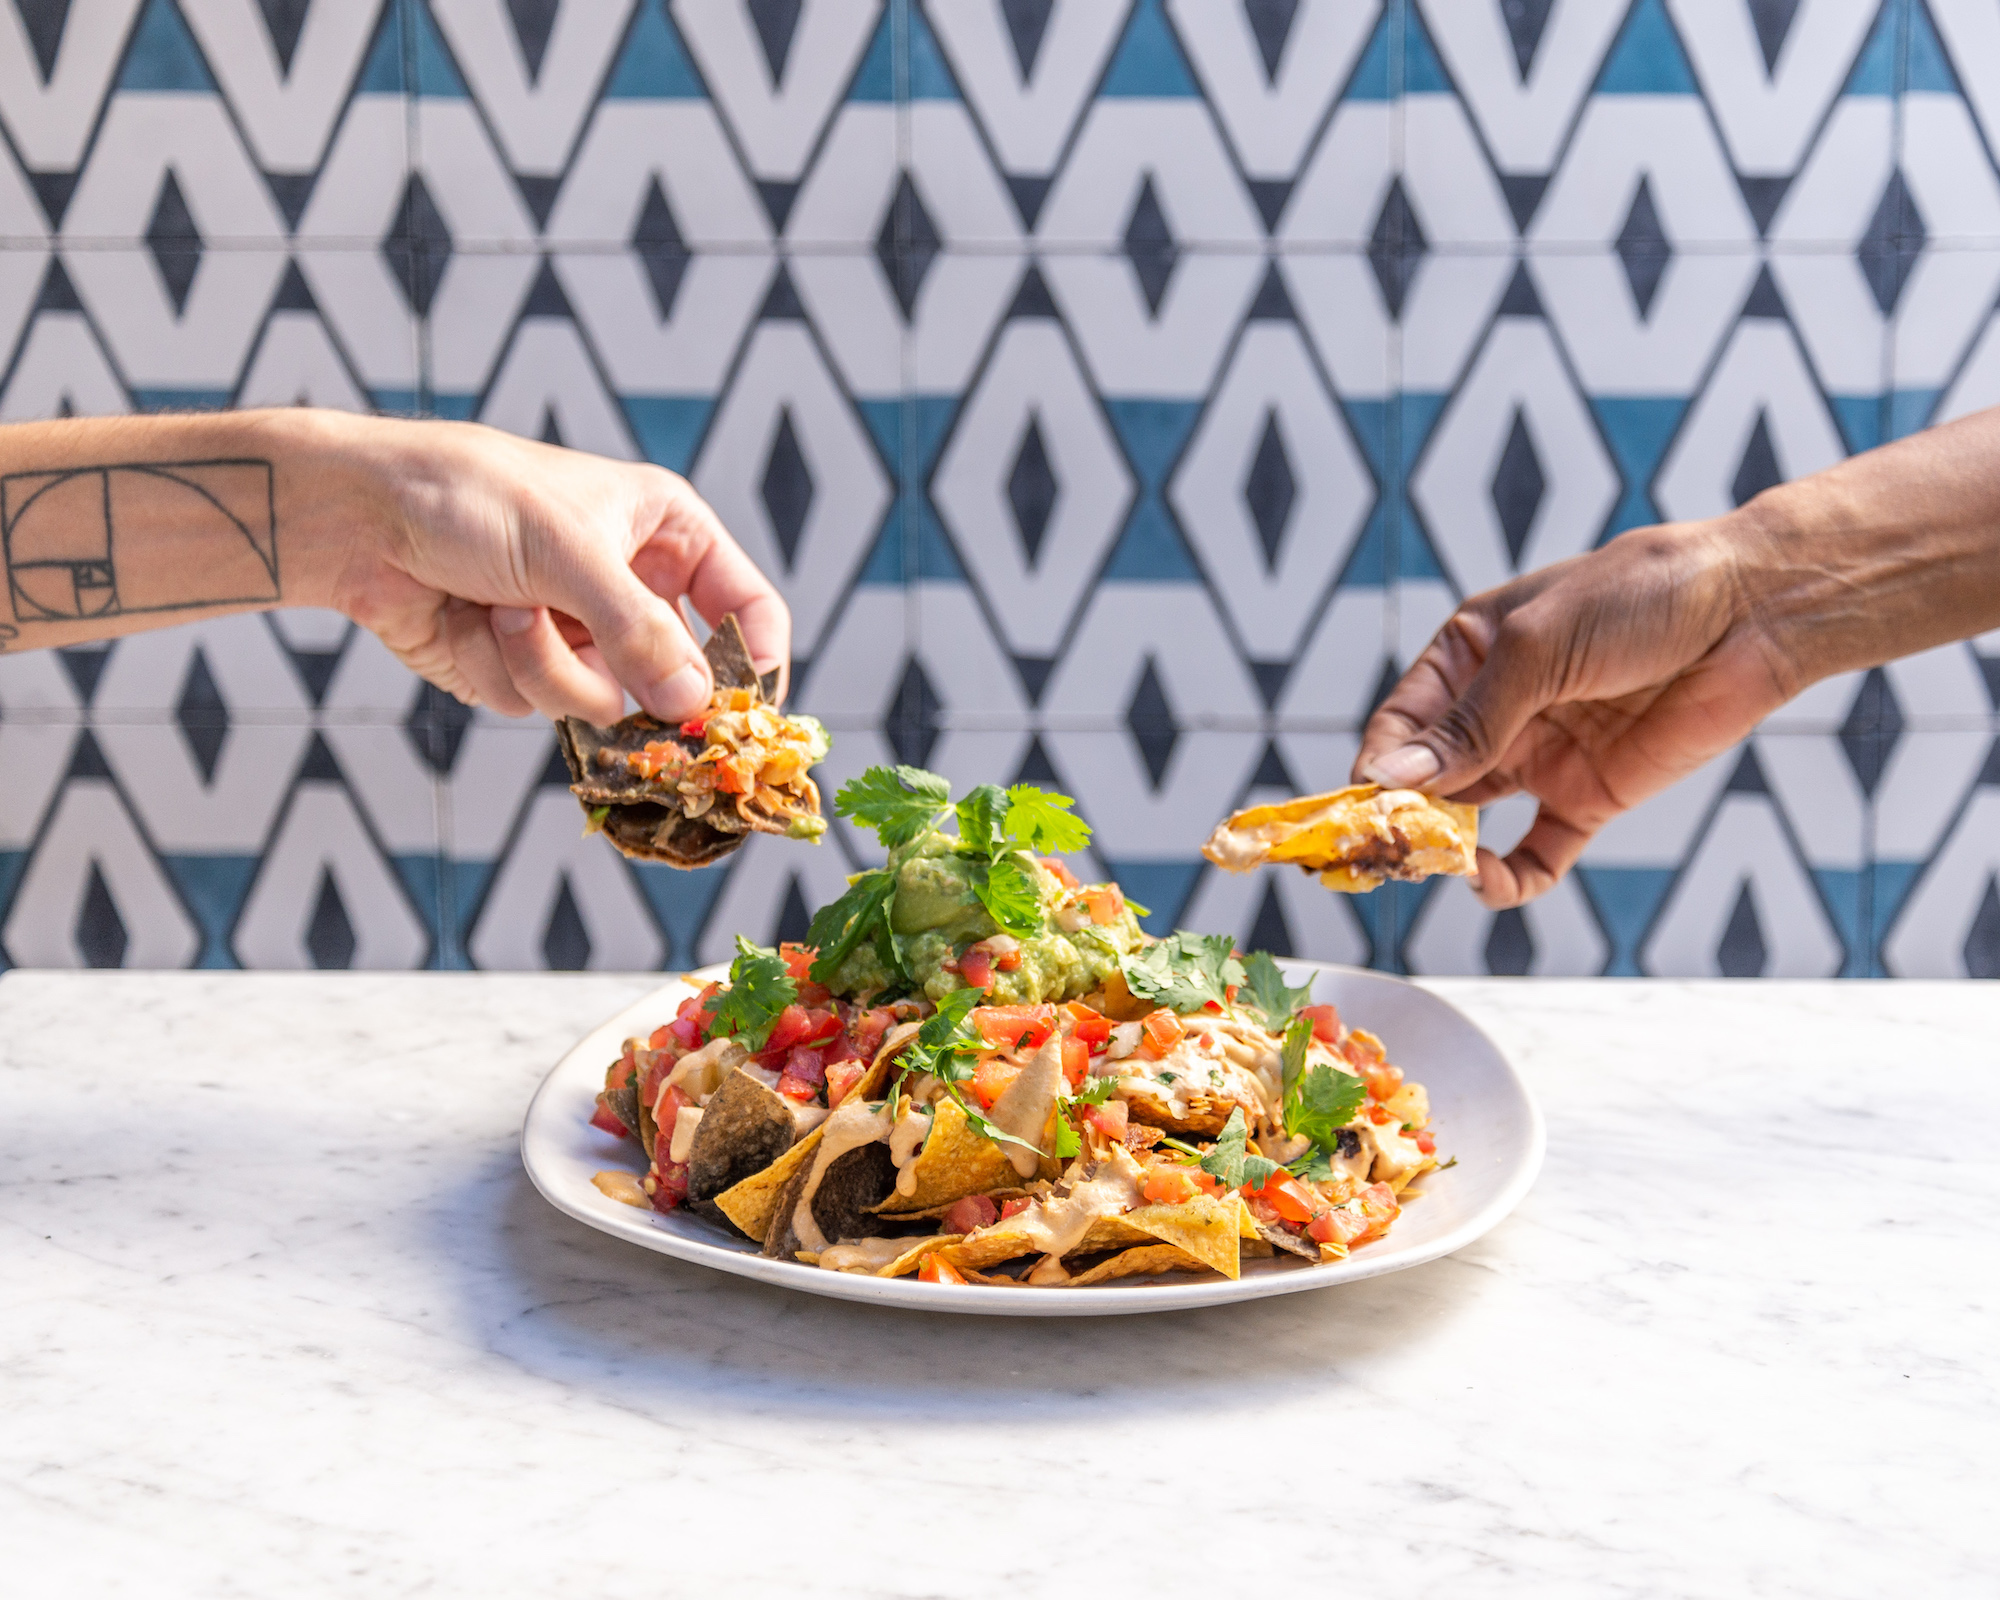 Vegan nachos getting pulled in two directions on a plate.